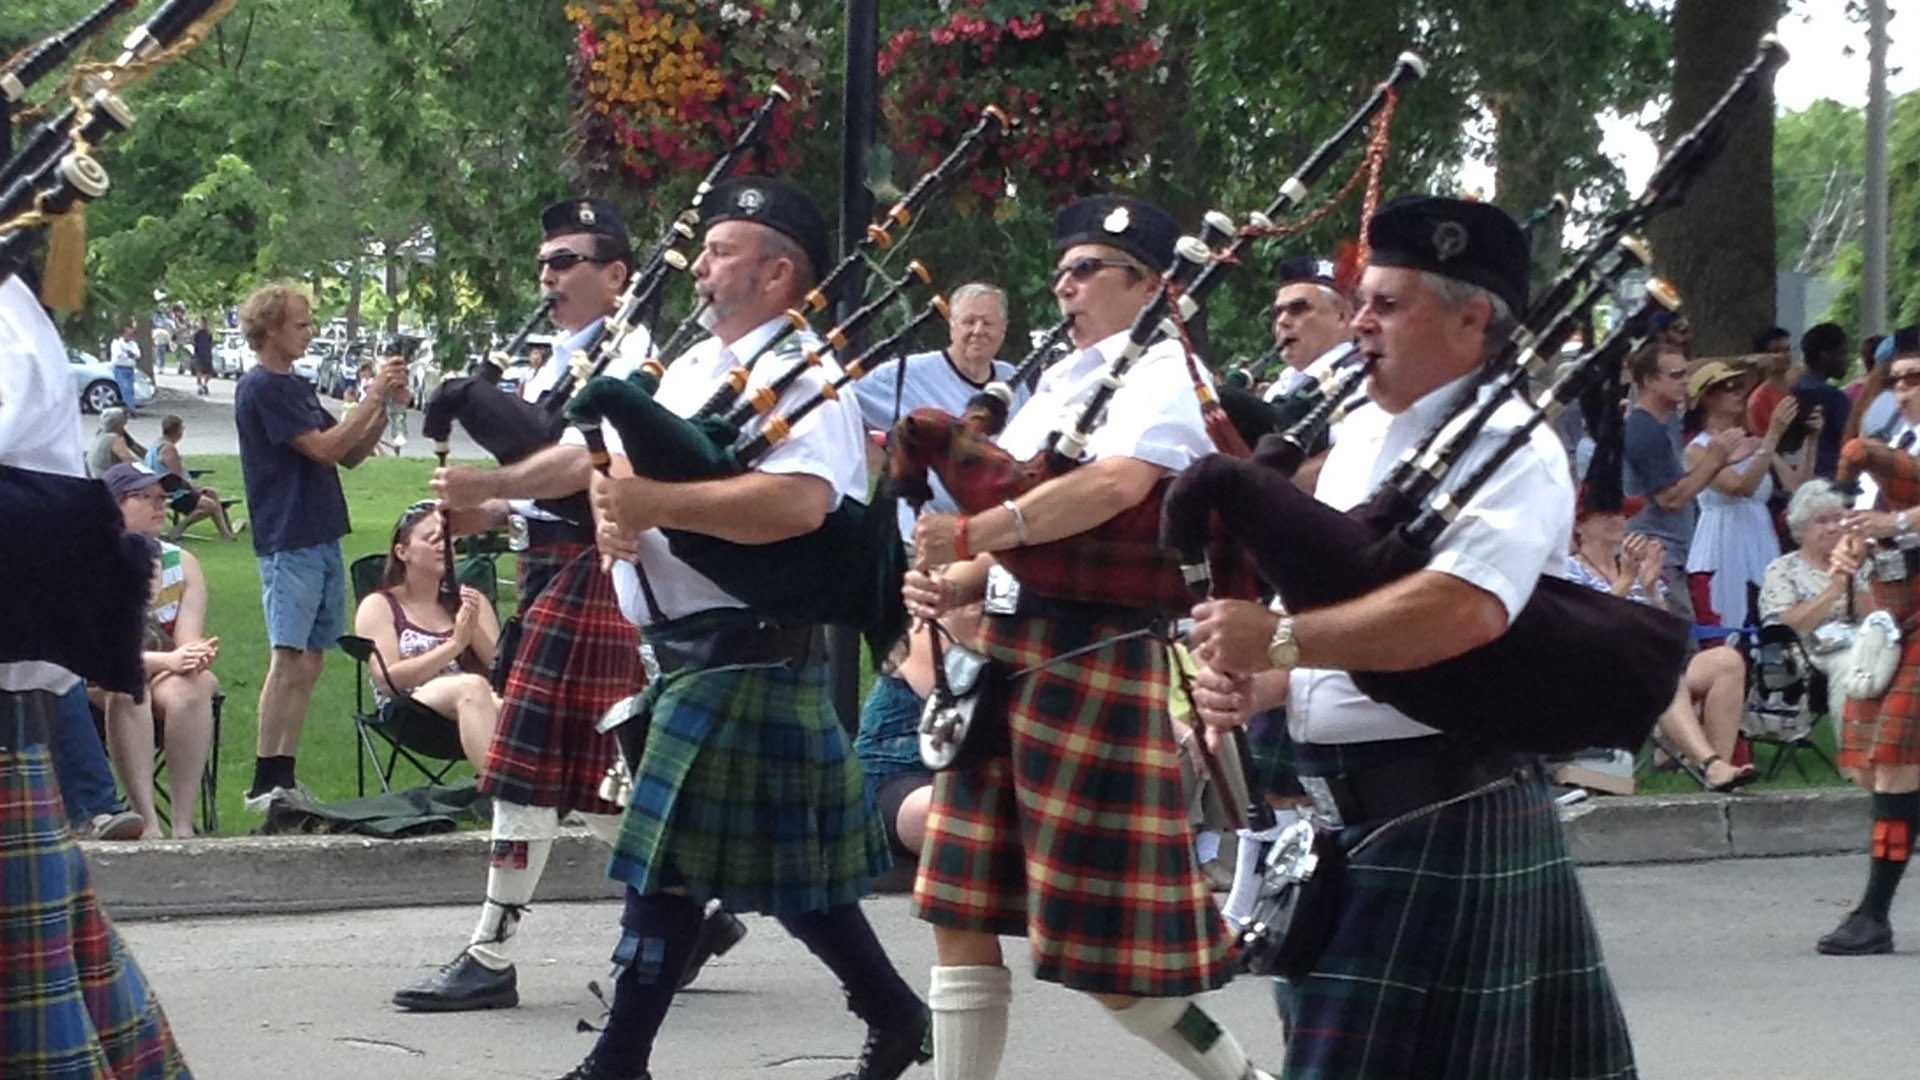 scottish festival - July Events You Don't Want To Miss!